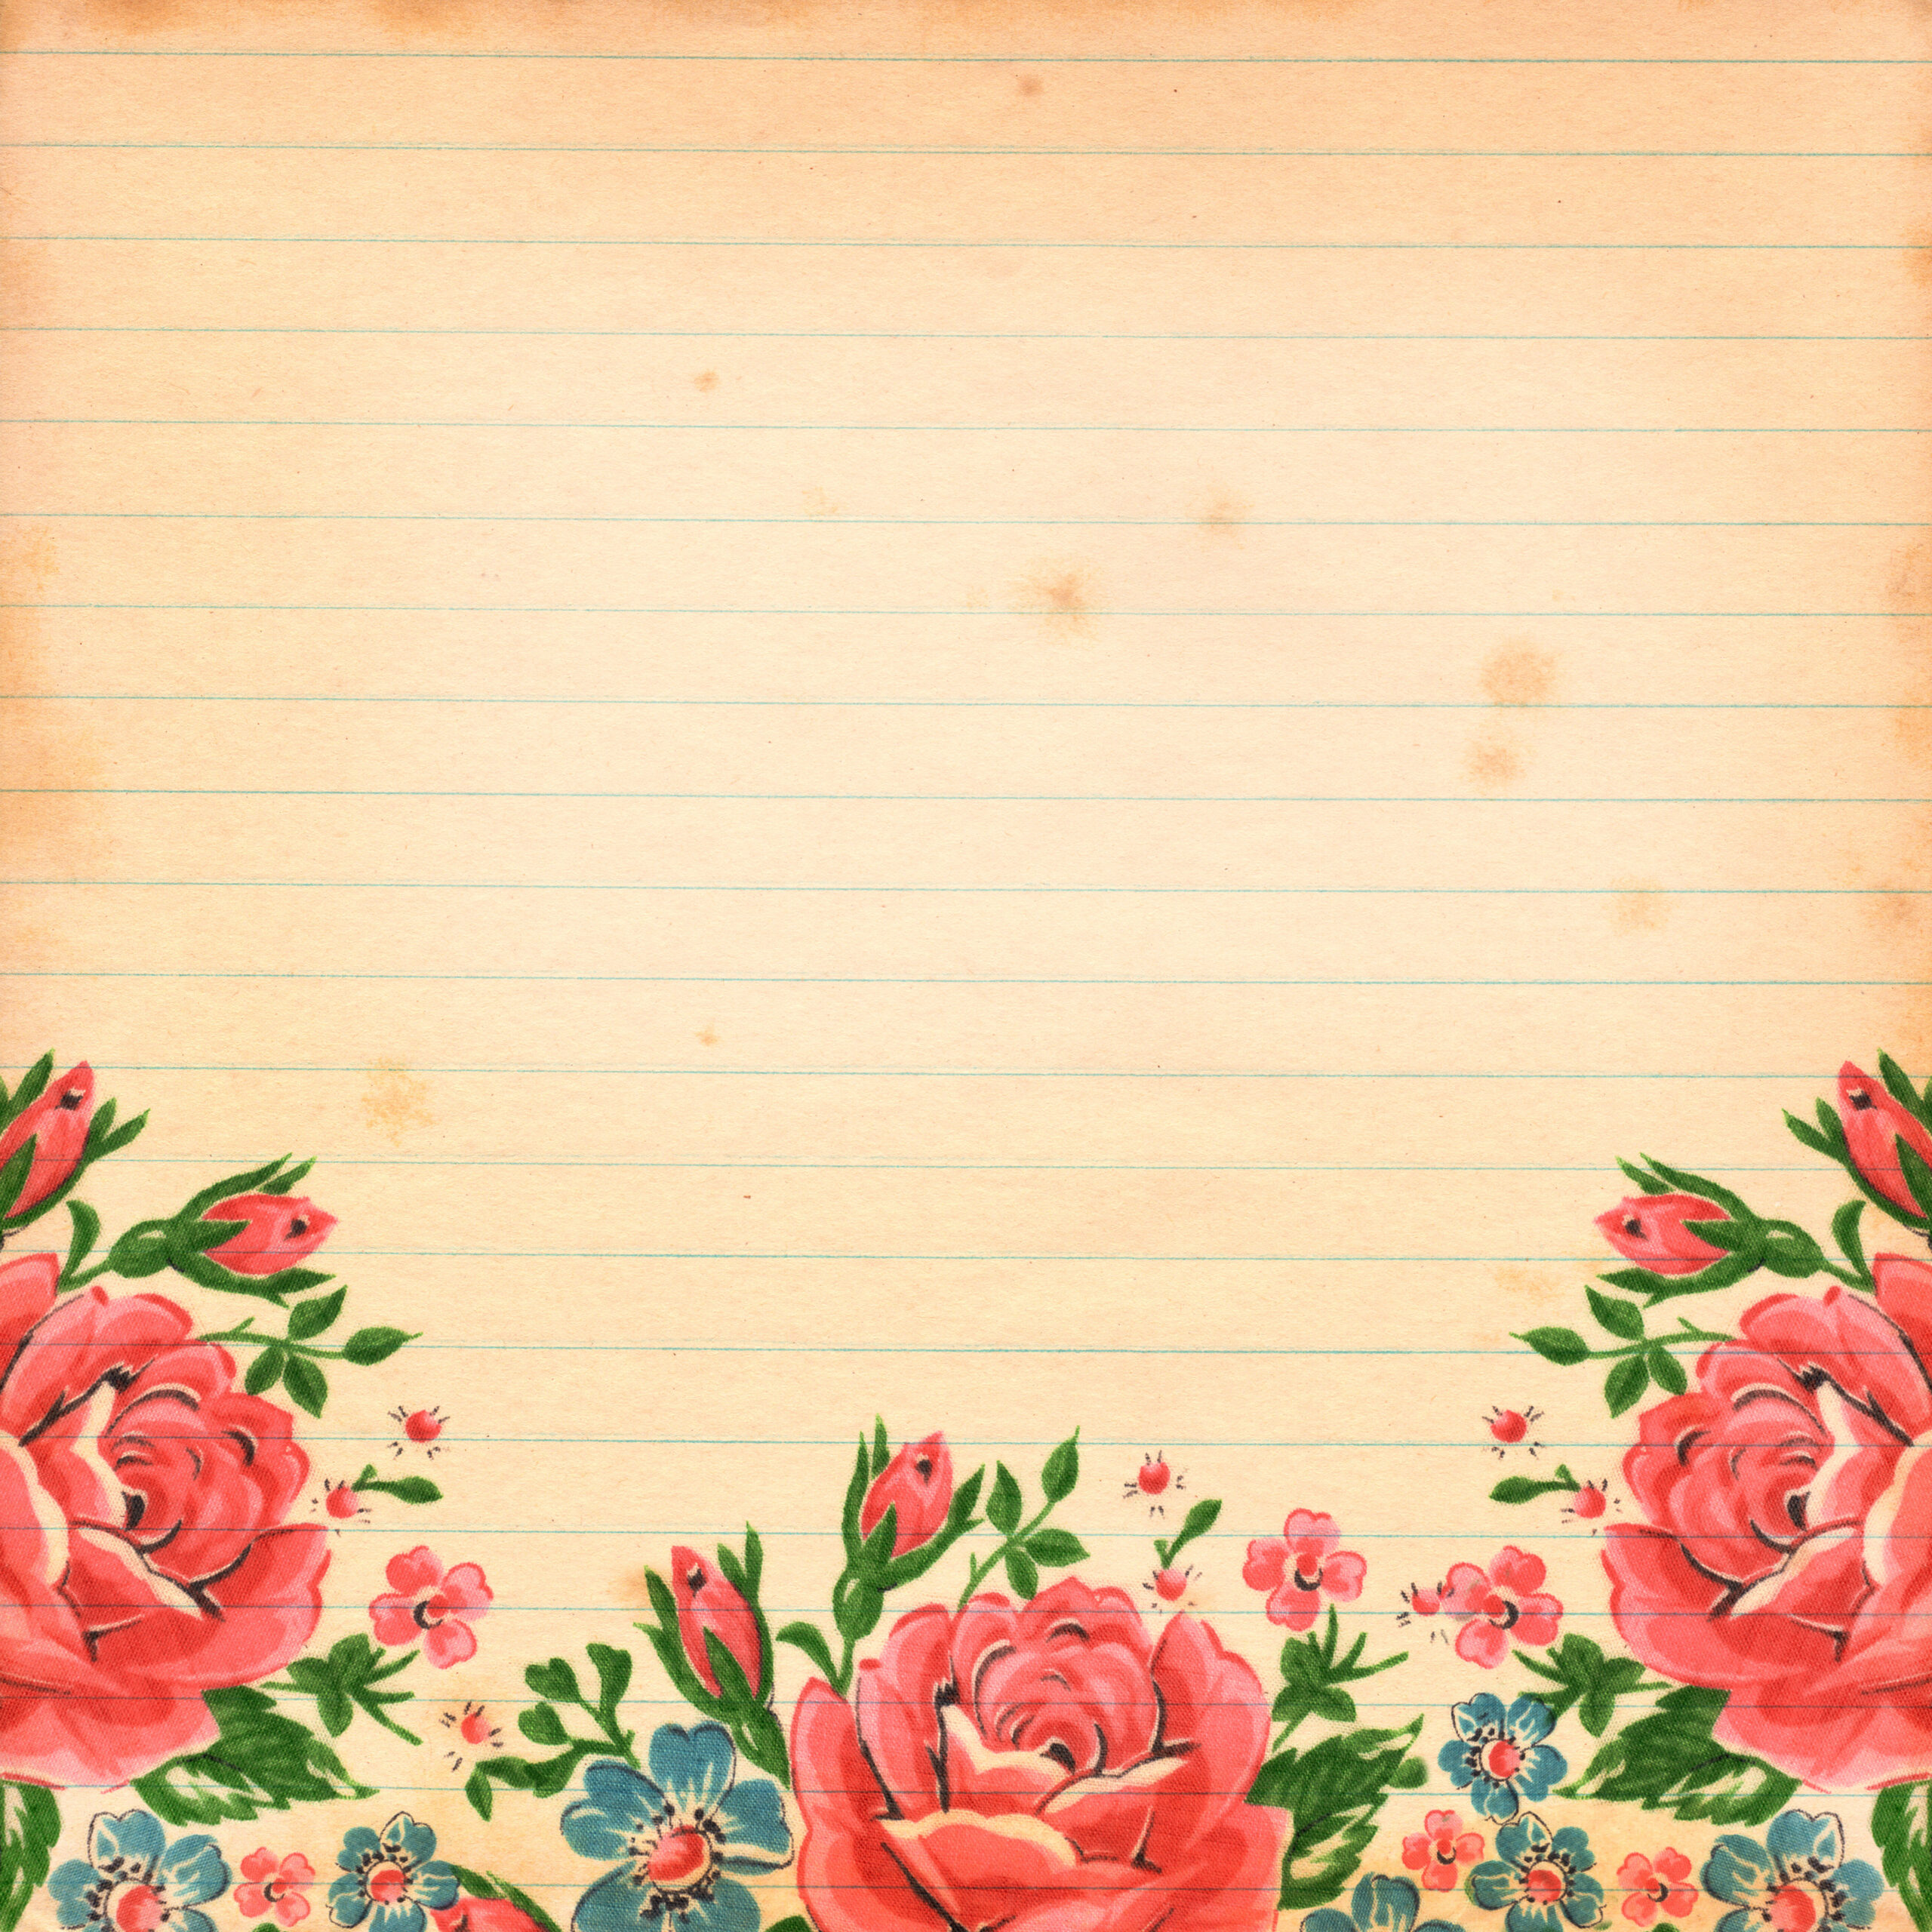 Fall Out Boy Flower Wallpaper Free Vintage Floral Digital Scrapbooking Paper By Fptfy 6